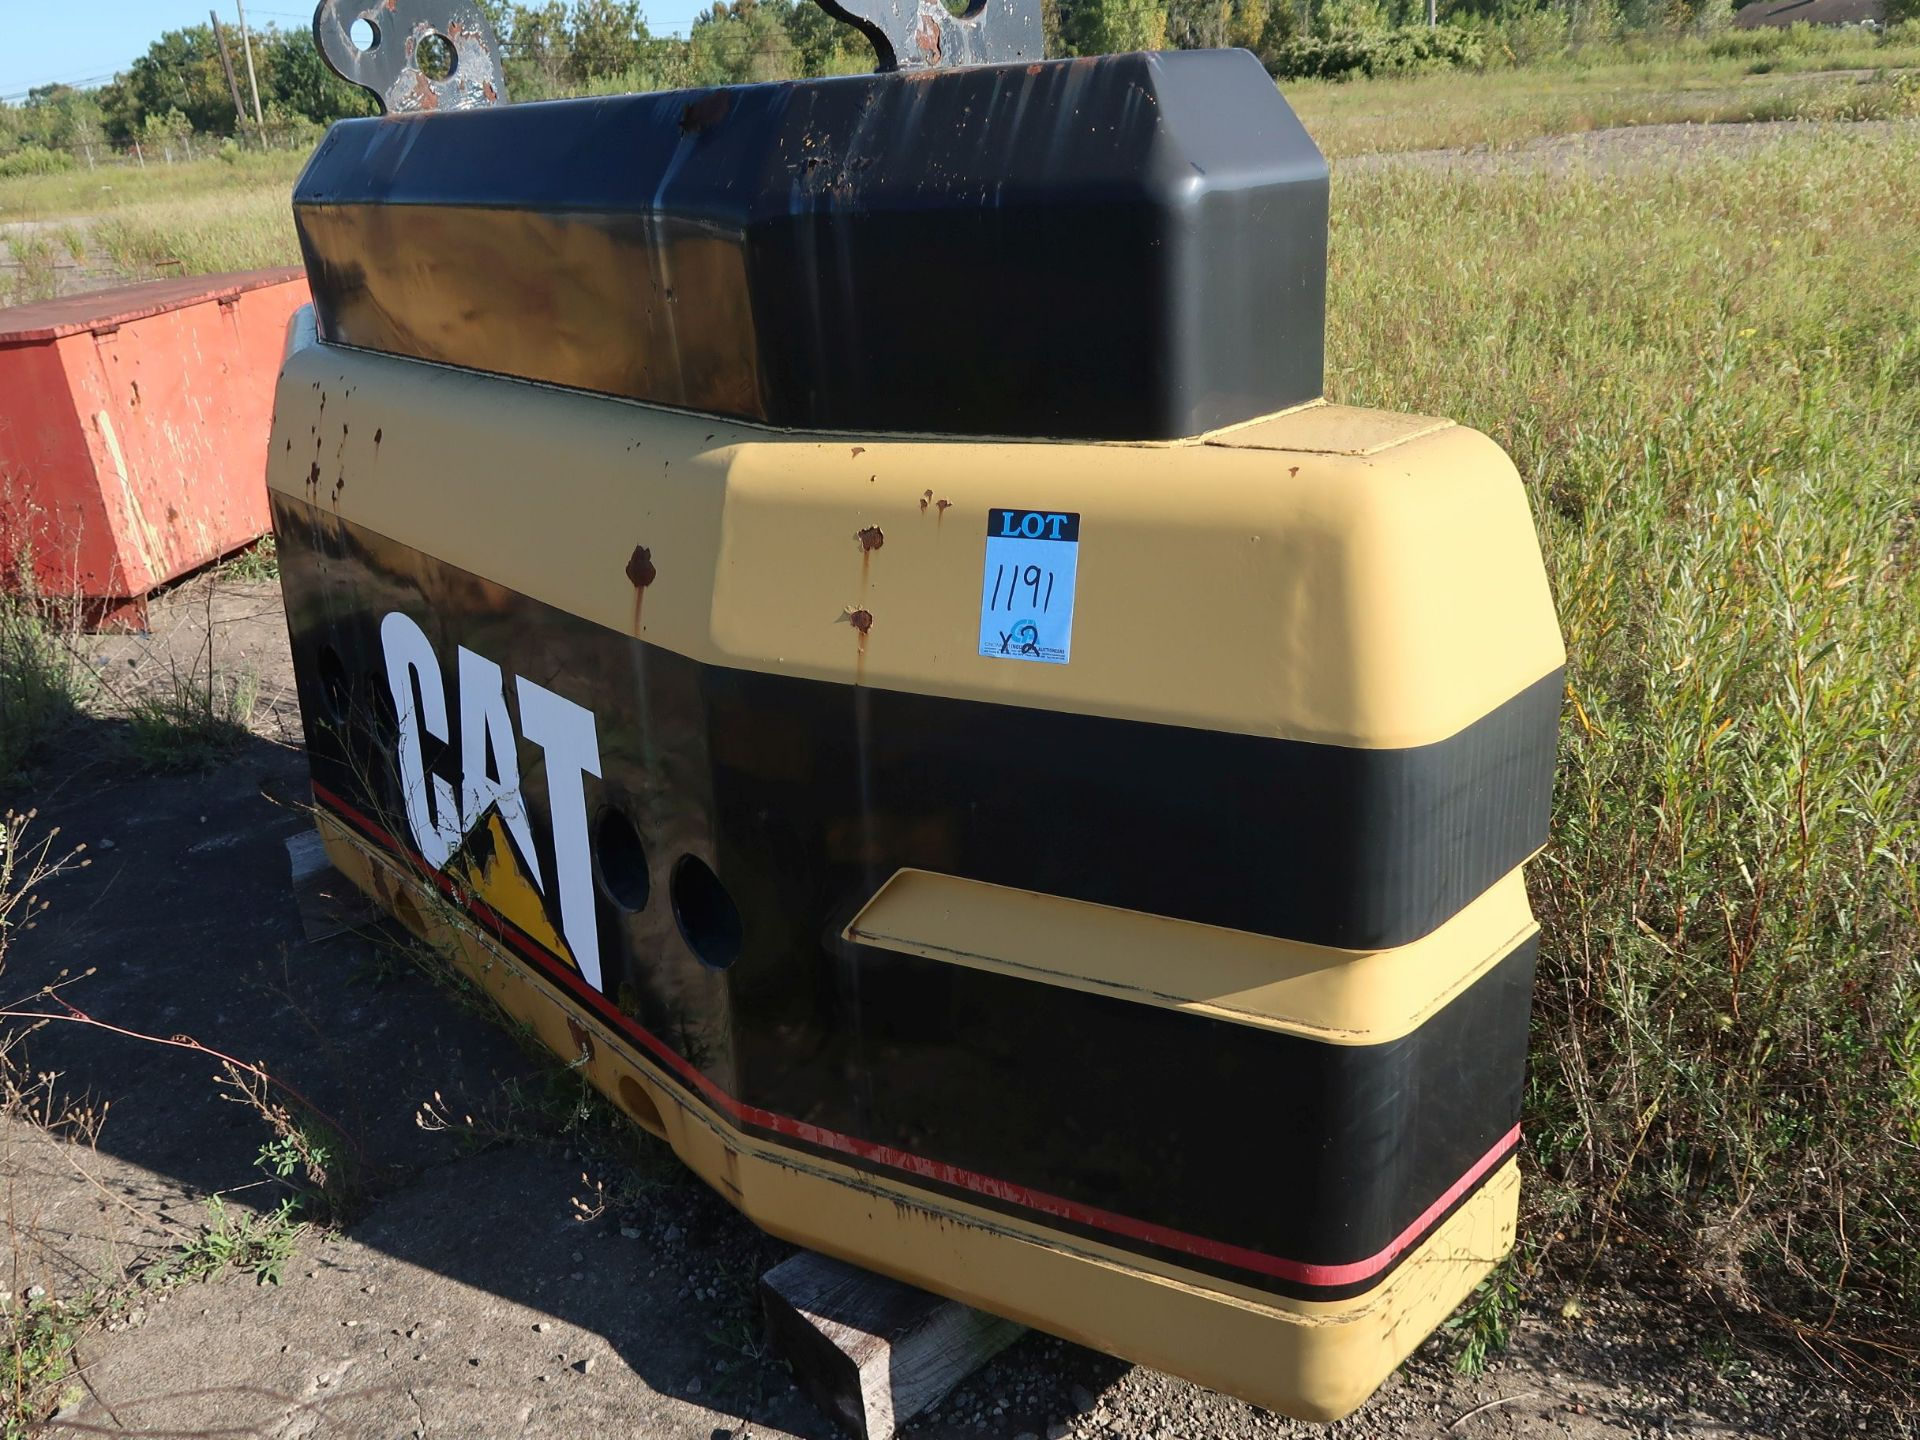 Lot 1191 - 8' X 18' CATERPILLAR EXCAVATOR COUNTER WEIGHTS WITH ADDITIONAL COUNTER WEIGHT TO 20,000 LB